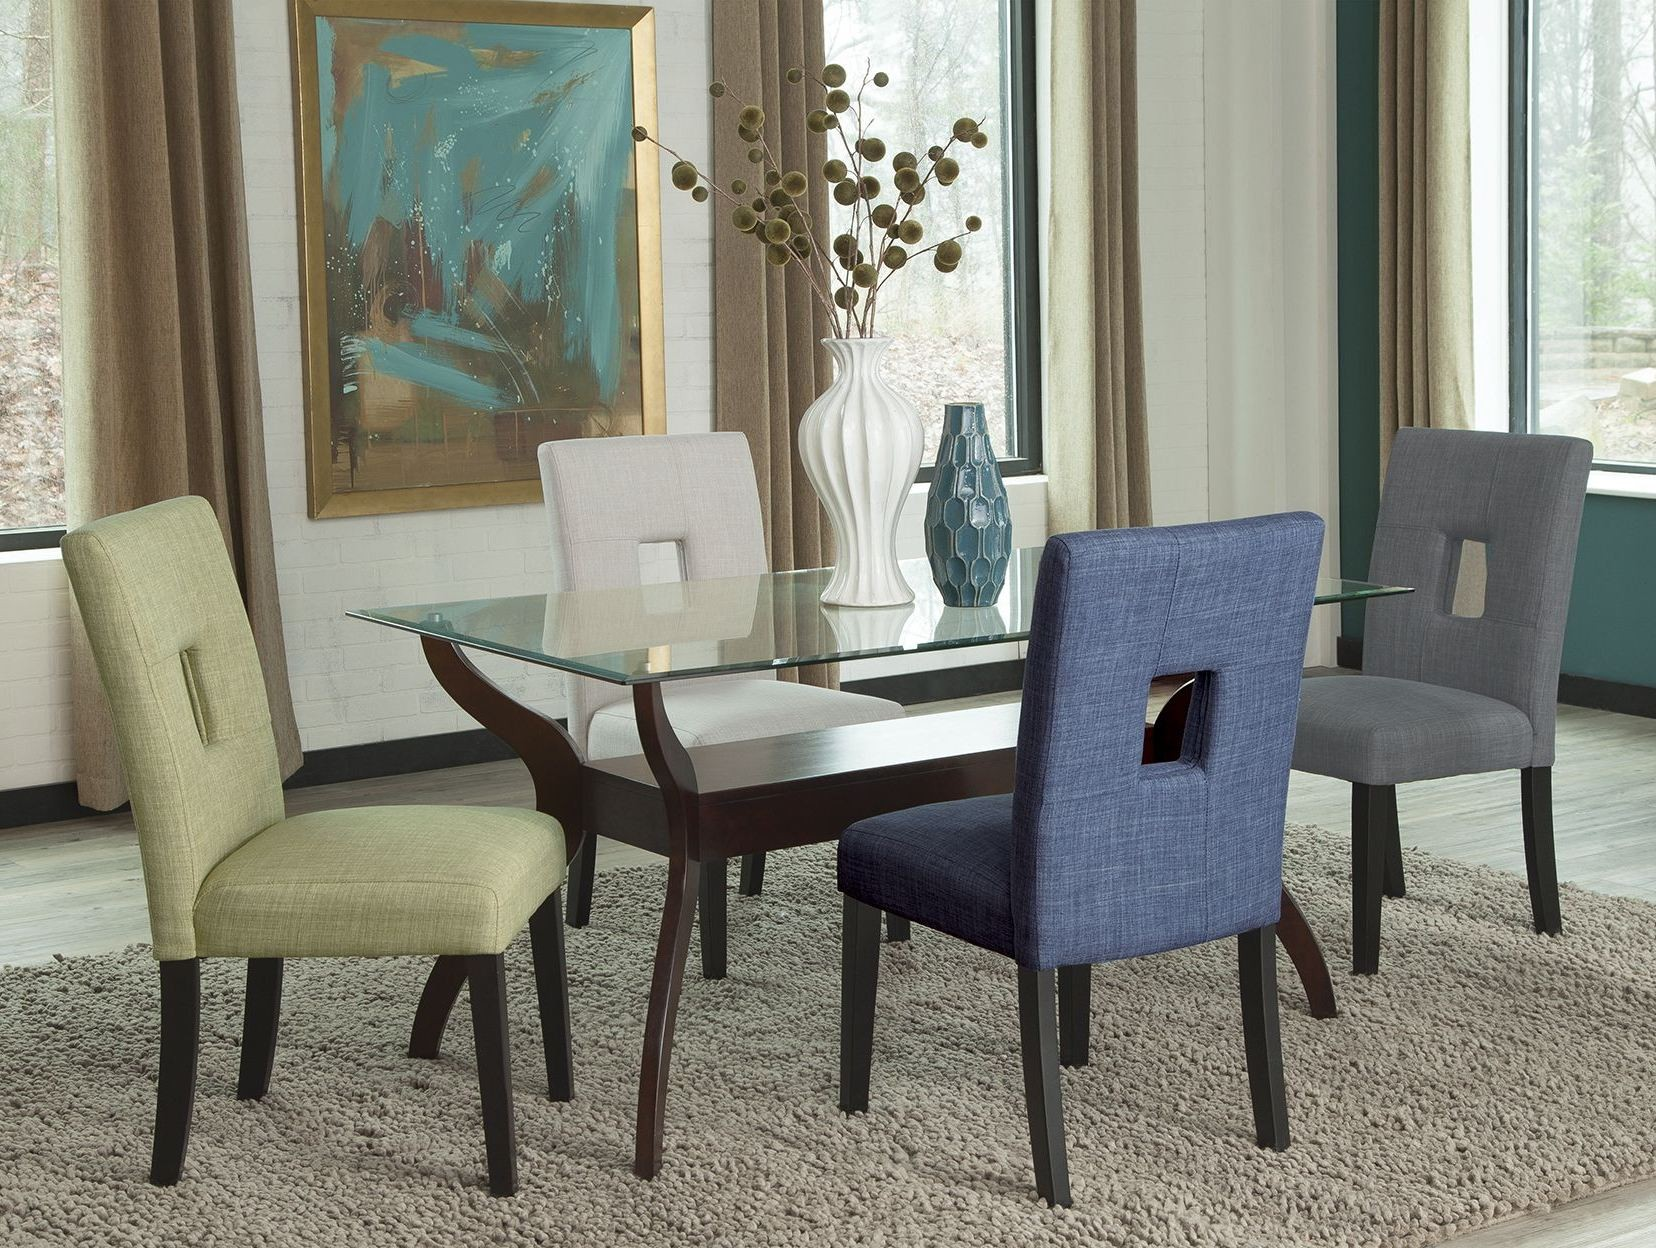 andenne cappuccino dining room set 106501 cb60rt coaster better home improvement gadgets reviews part 1090